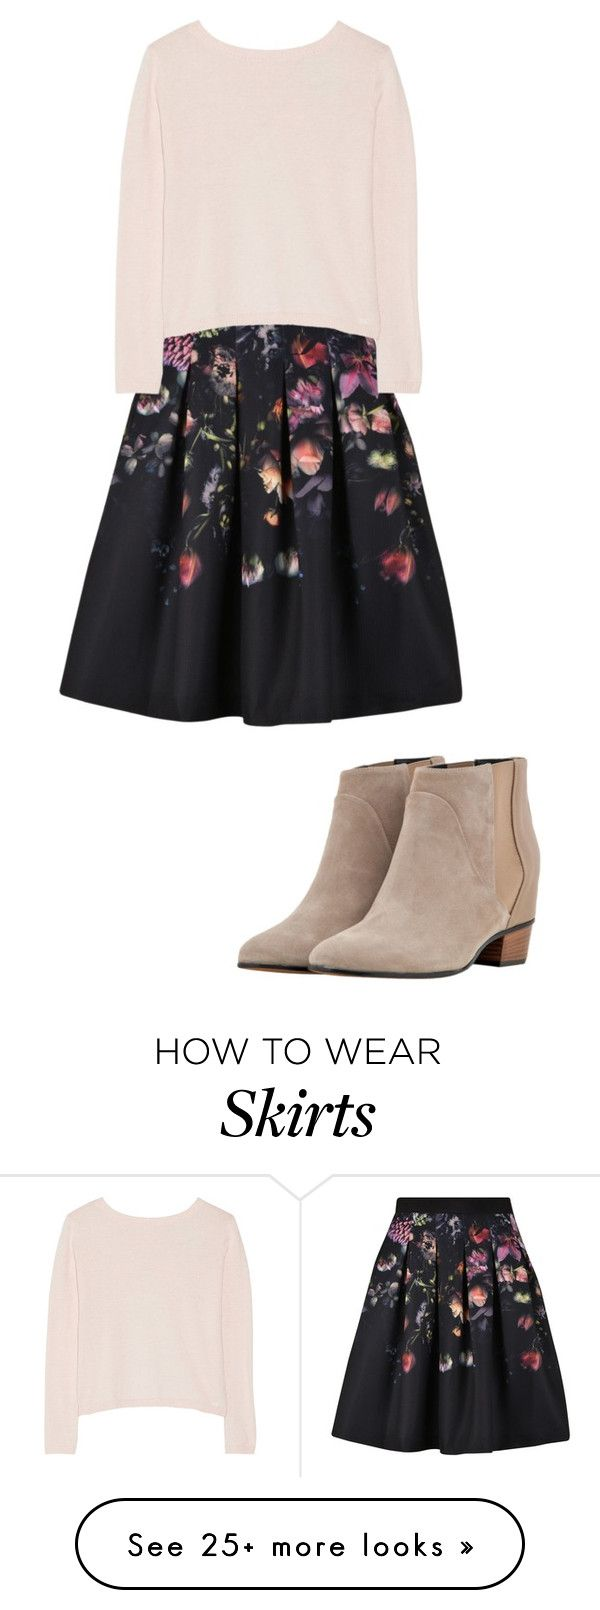 """Flower skirt"" by butterphinmnb on Polyvore featuring Ted Baker, Banjo & Matilda and Augusta"